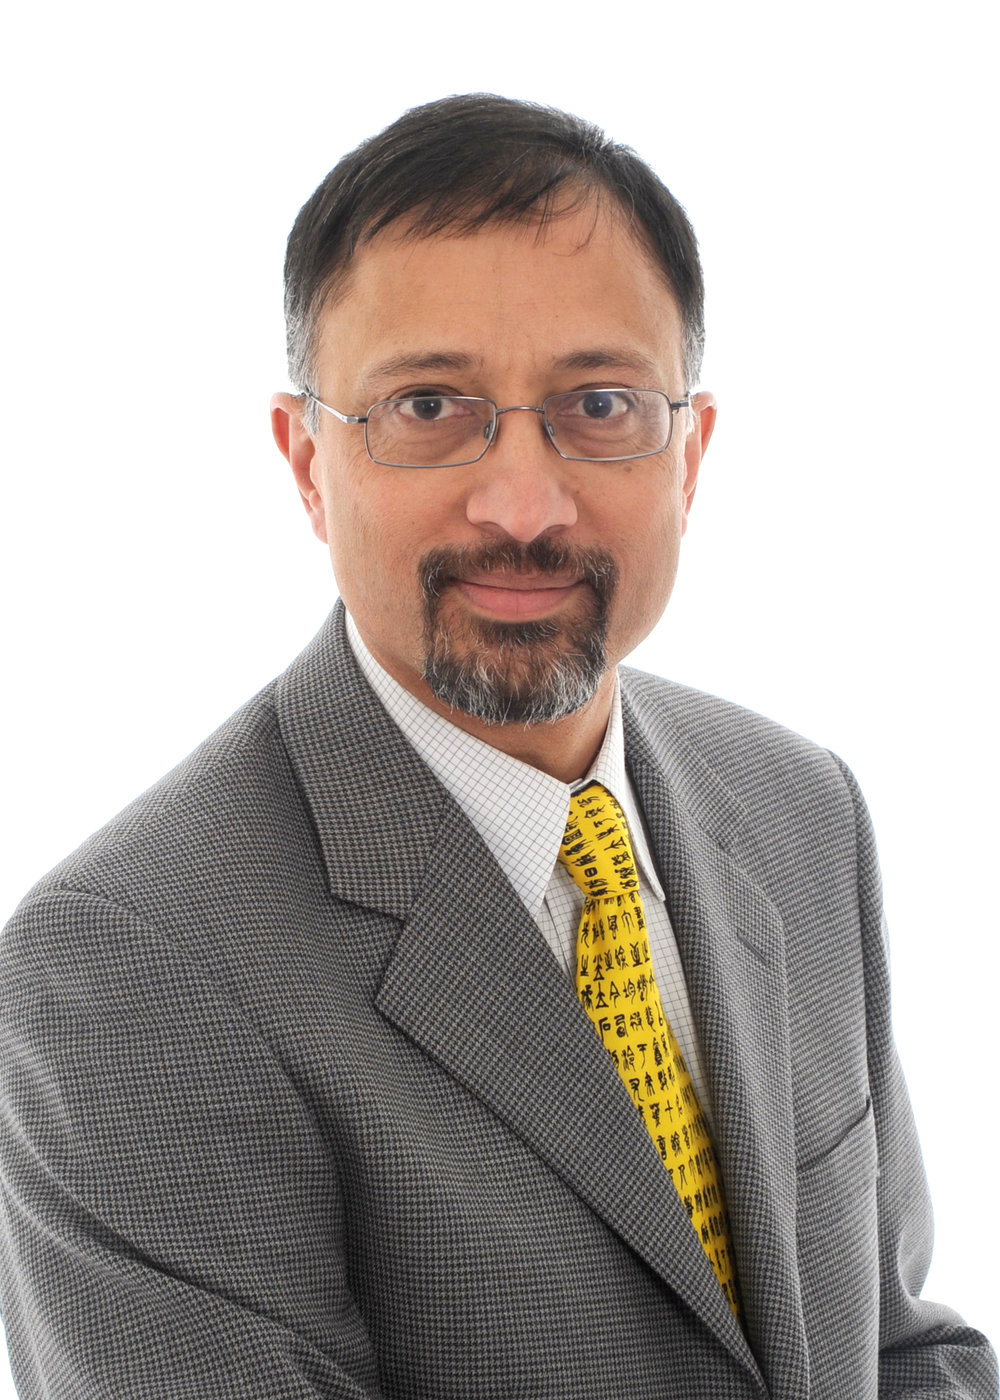 Dr. Mehul Mehta, President of Team MI